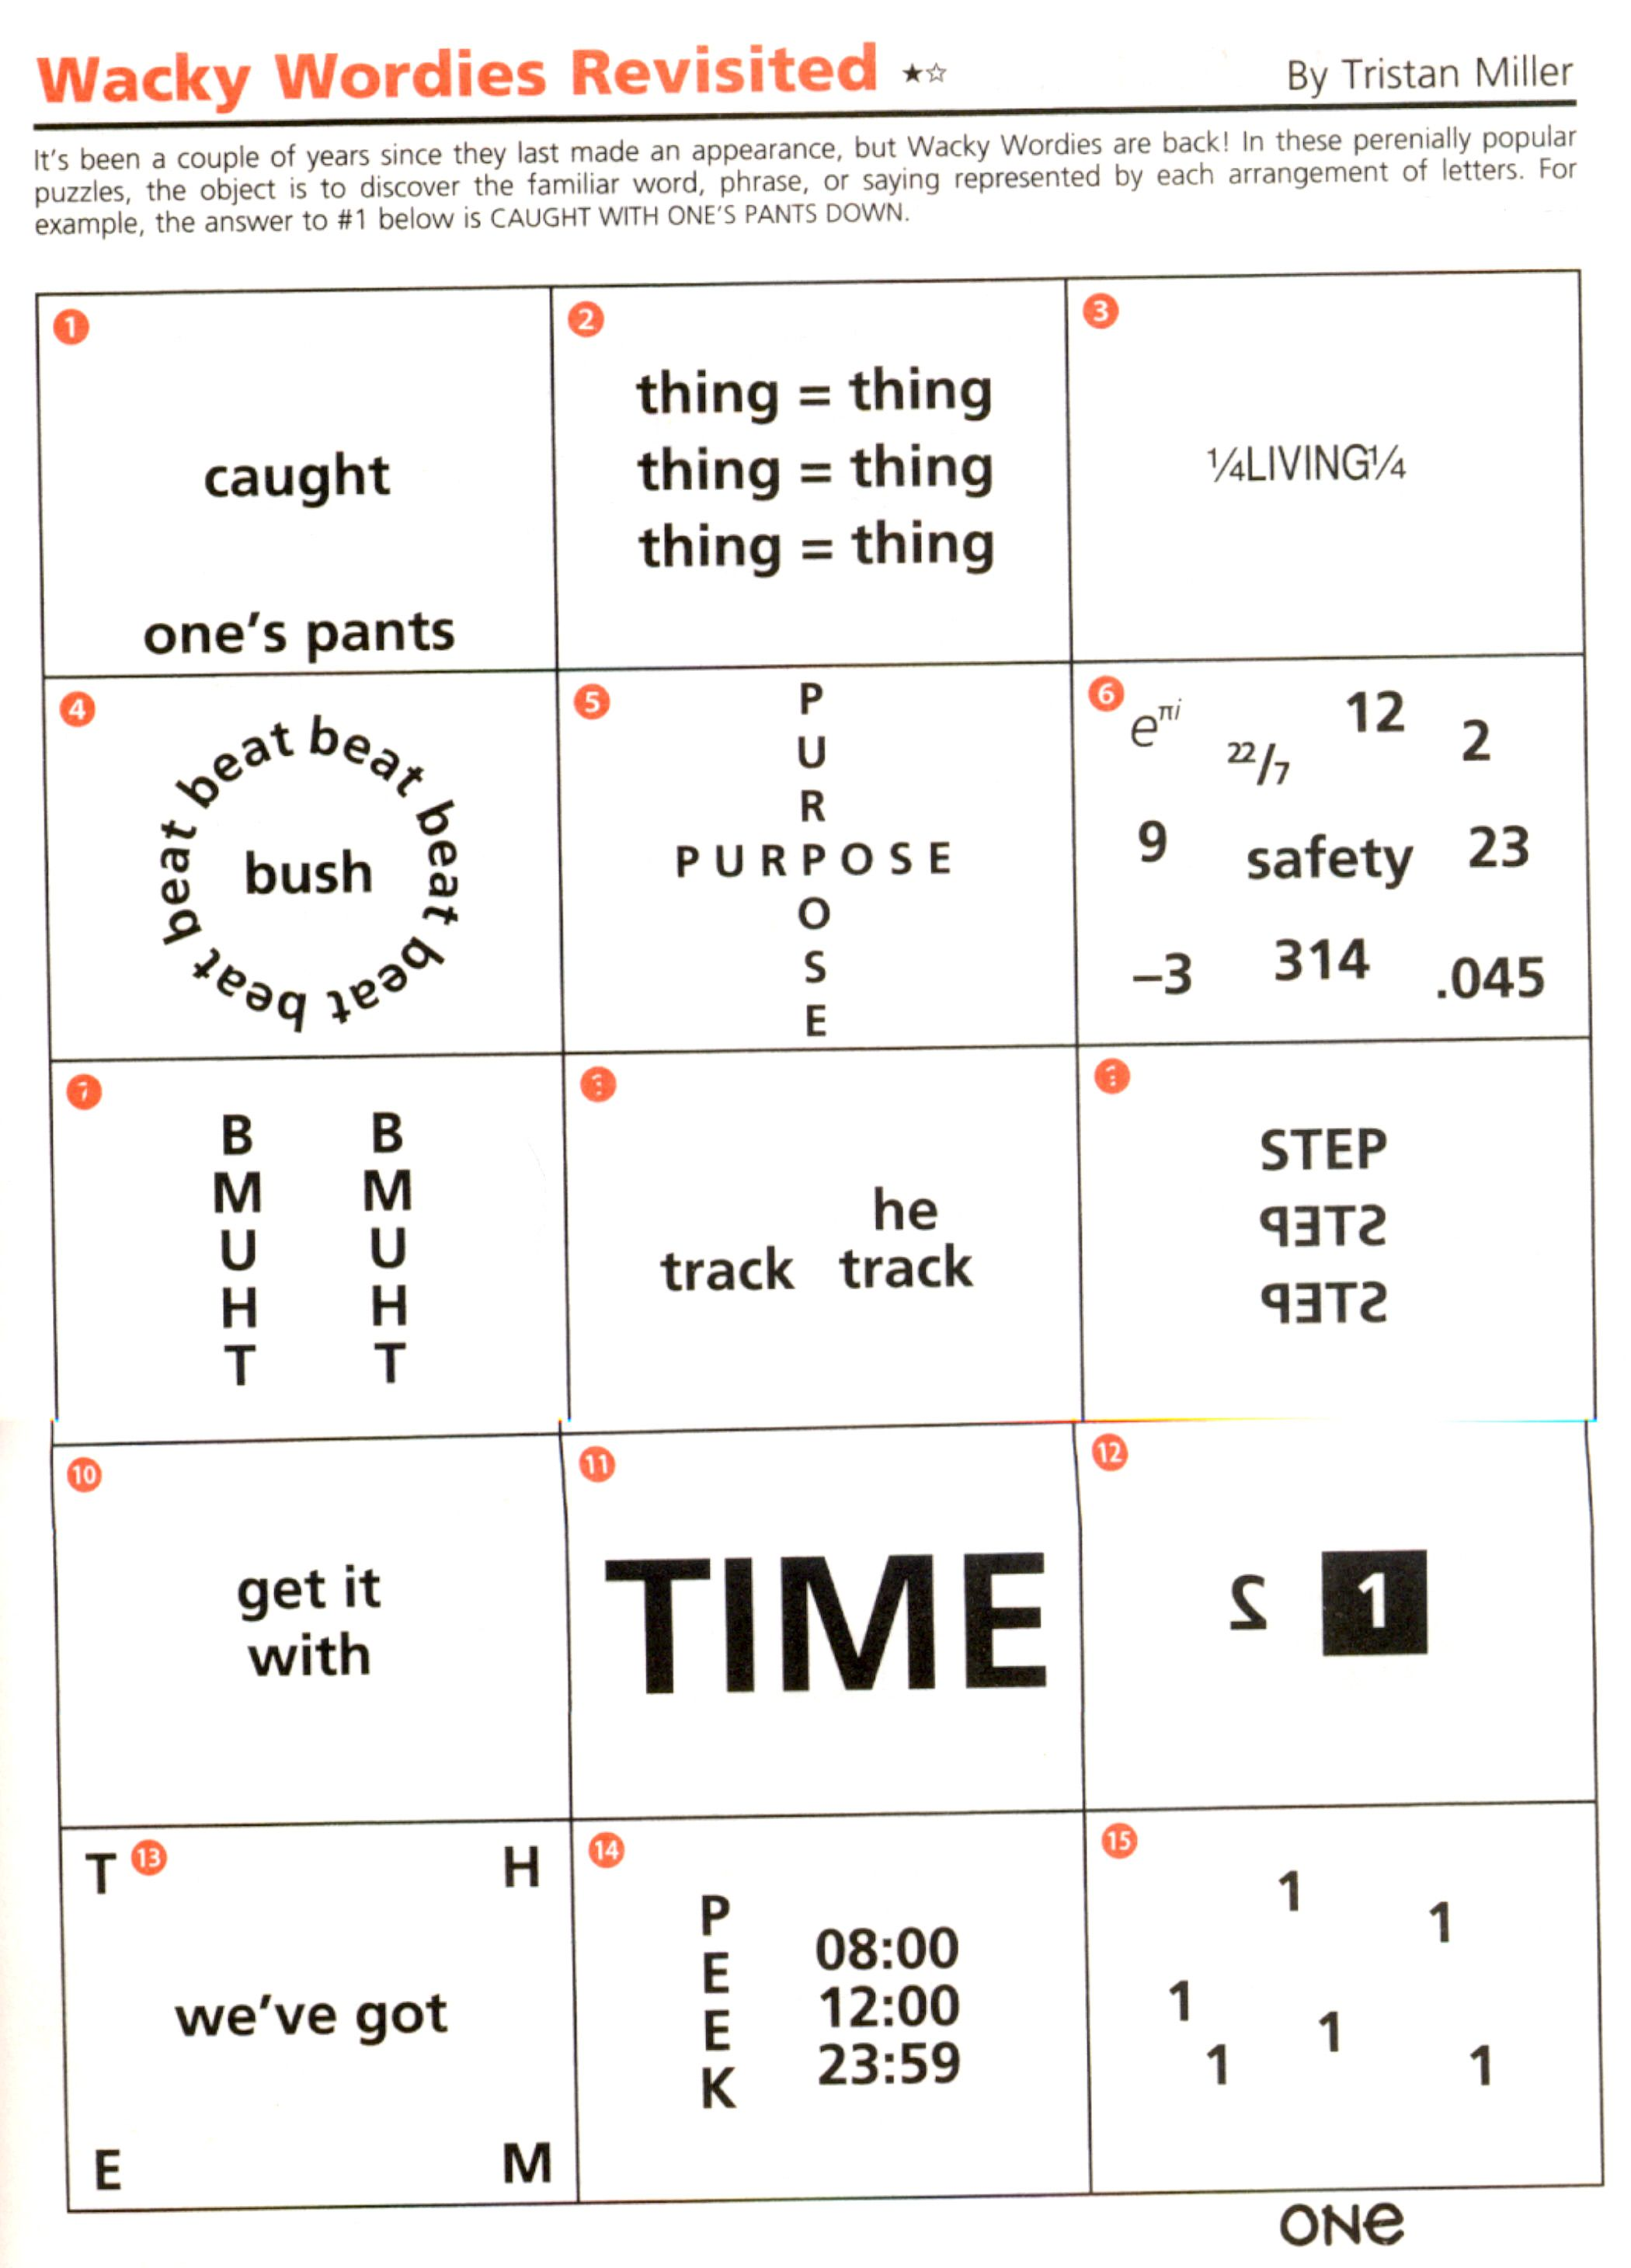 Wackie Wordies 92 Word puzzles brain teasers, Brain